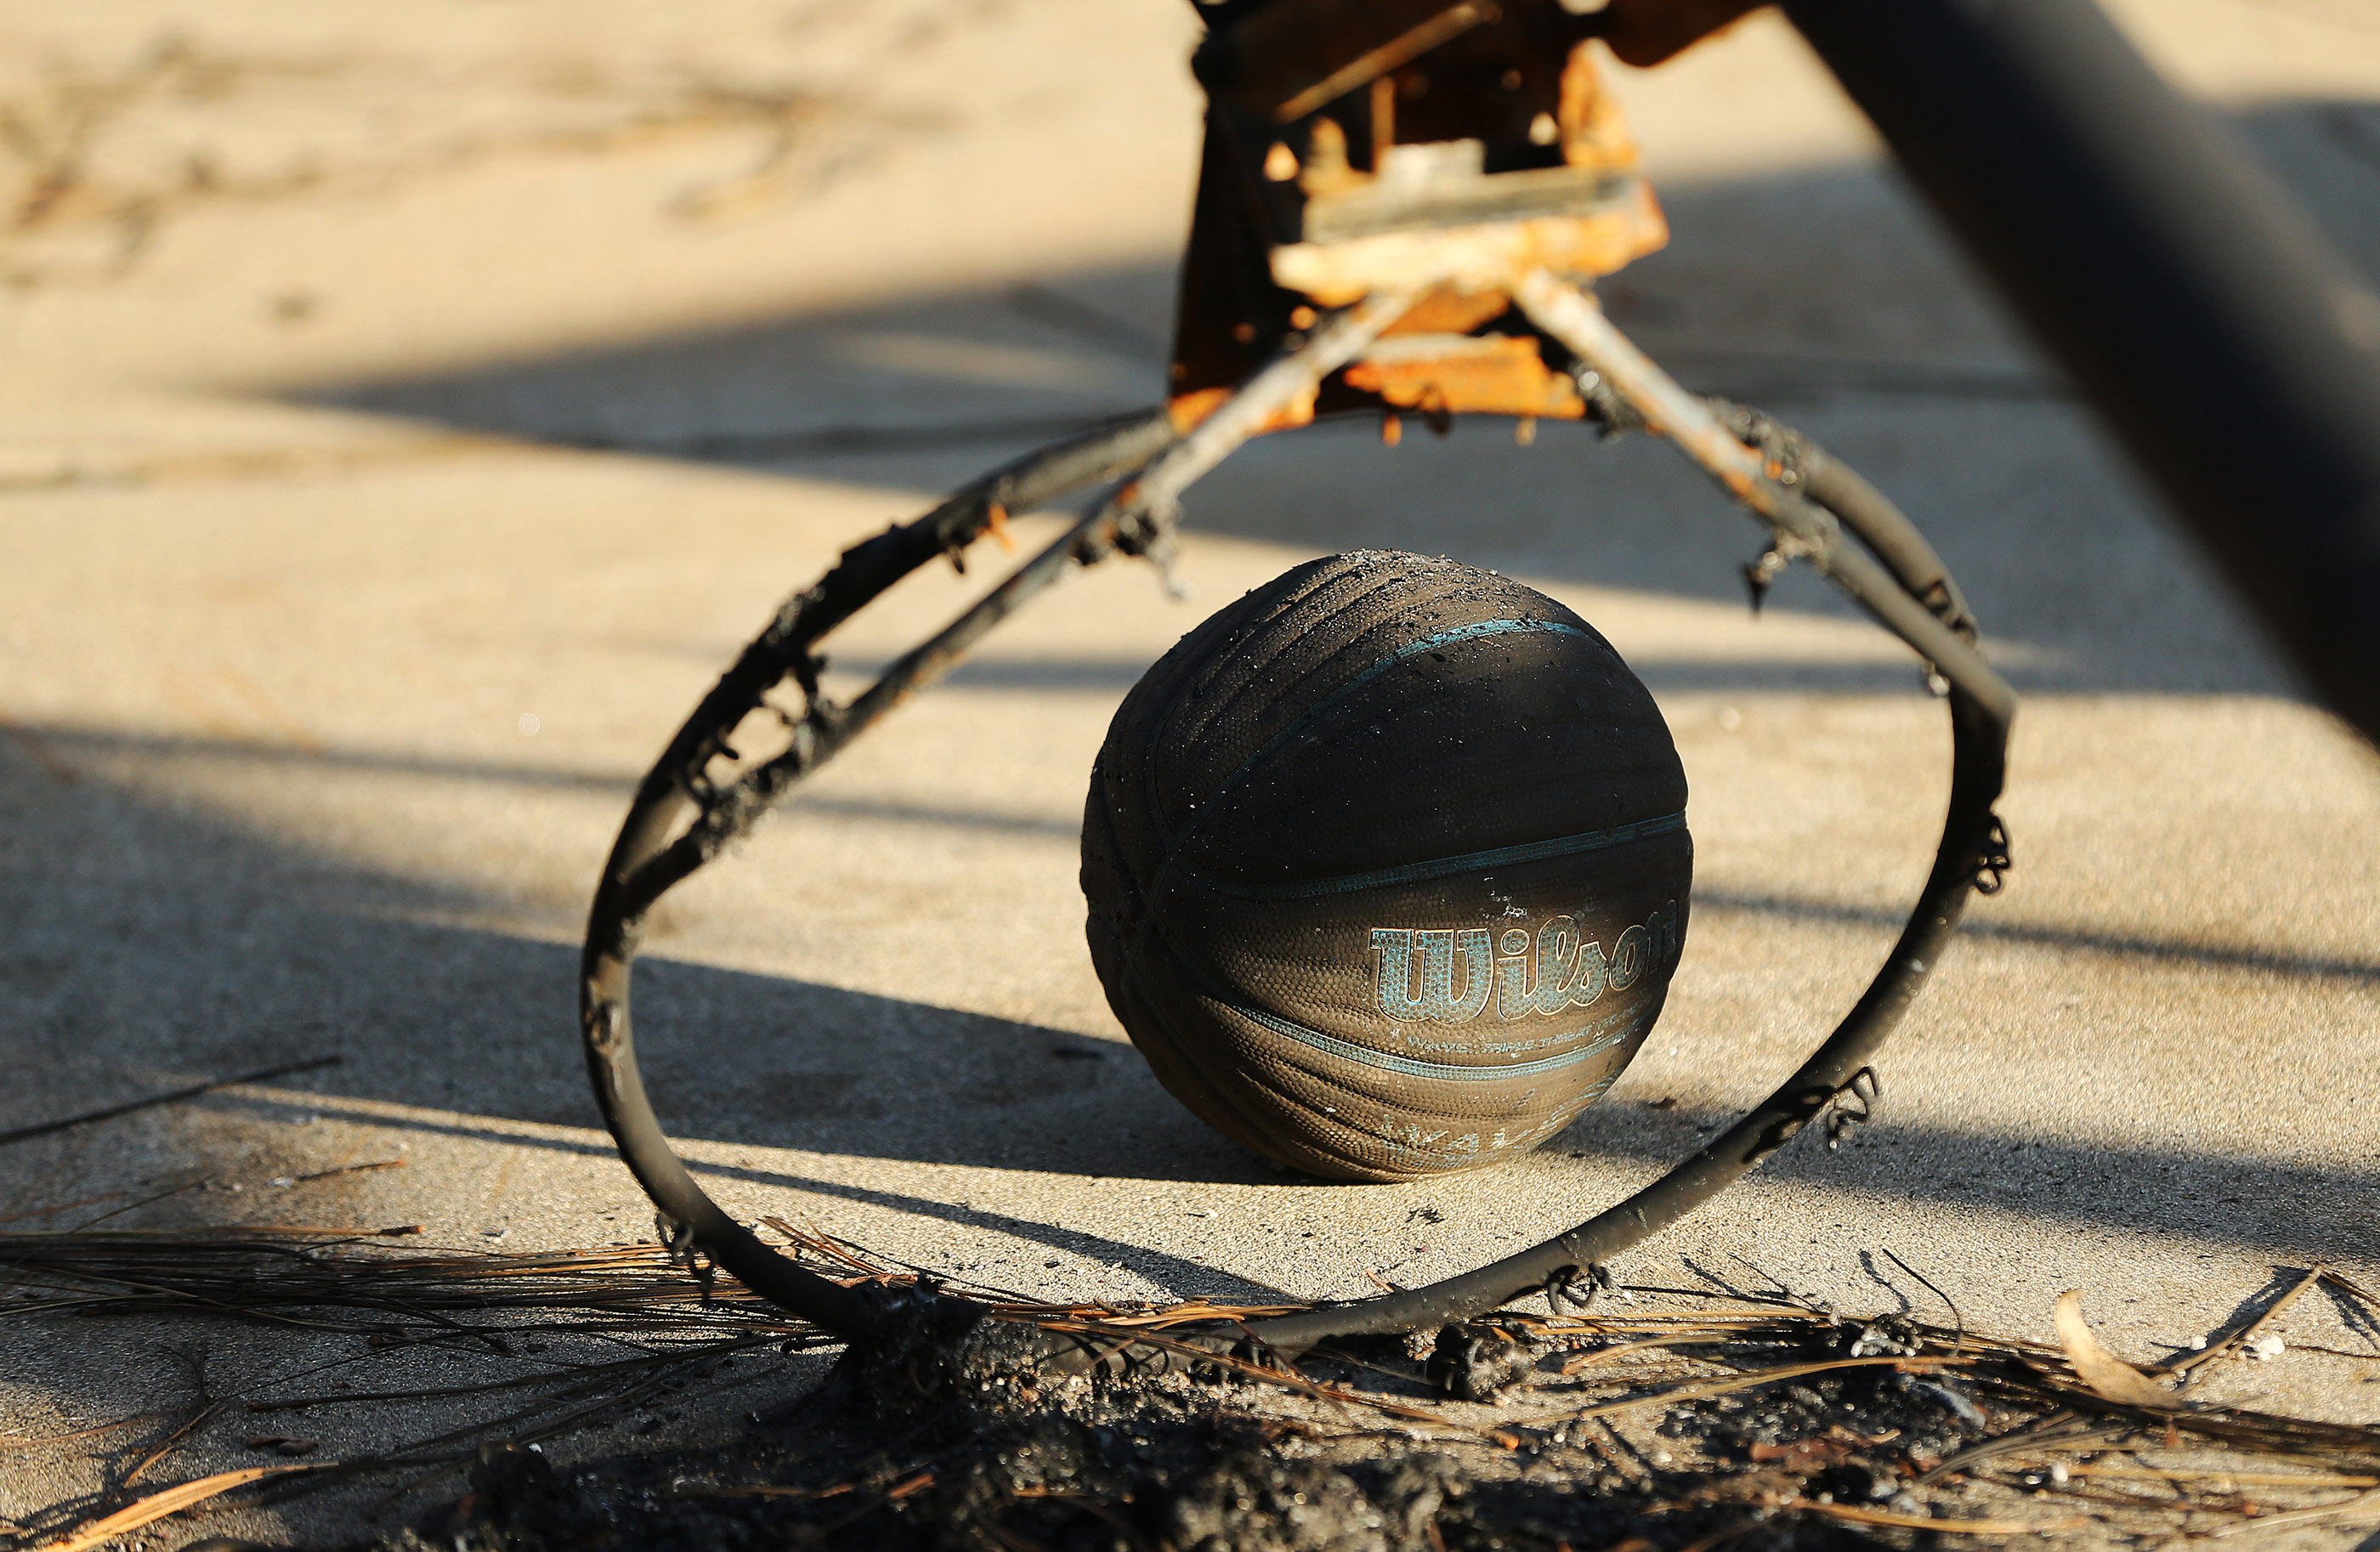 A basketball and hoop in Paradise, California, on Saturday, Jan. 12, 2019, two months after the Camp Fire destroyed more than 18,000 homes and businesses.